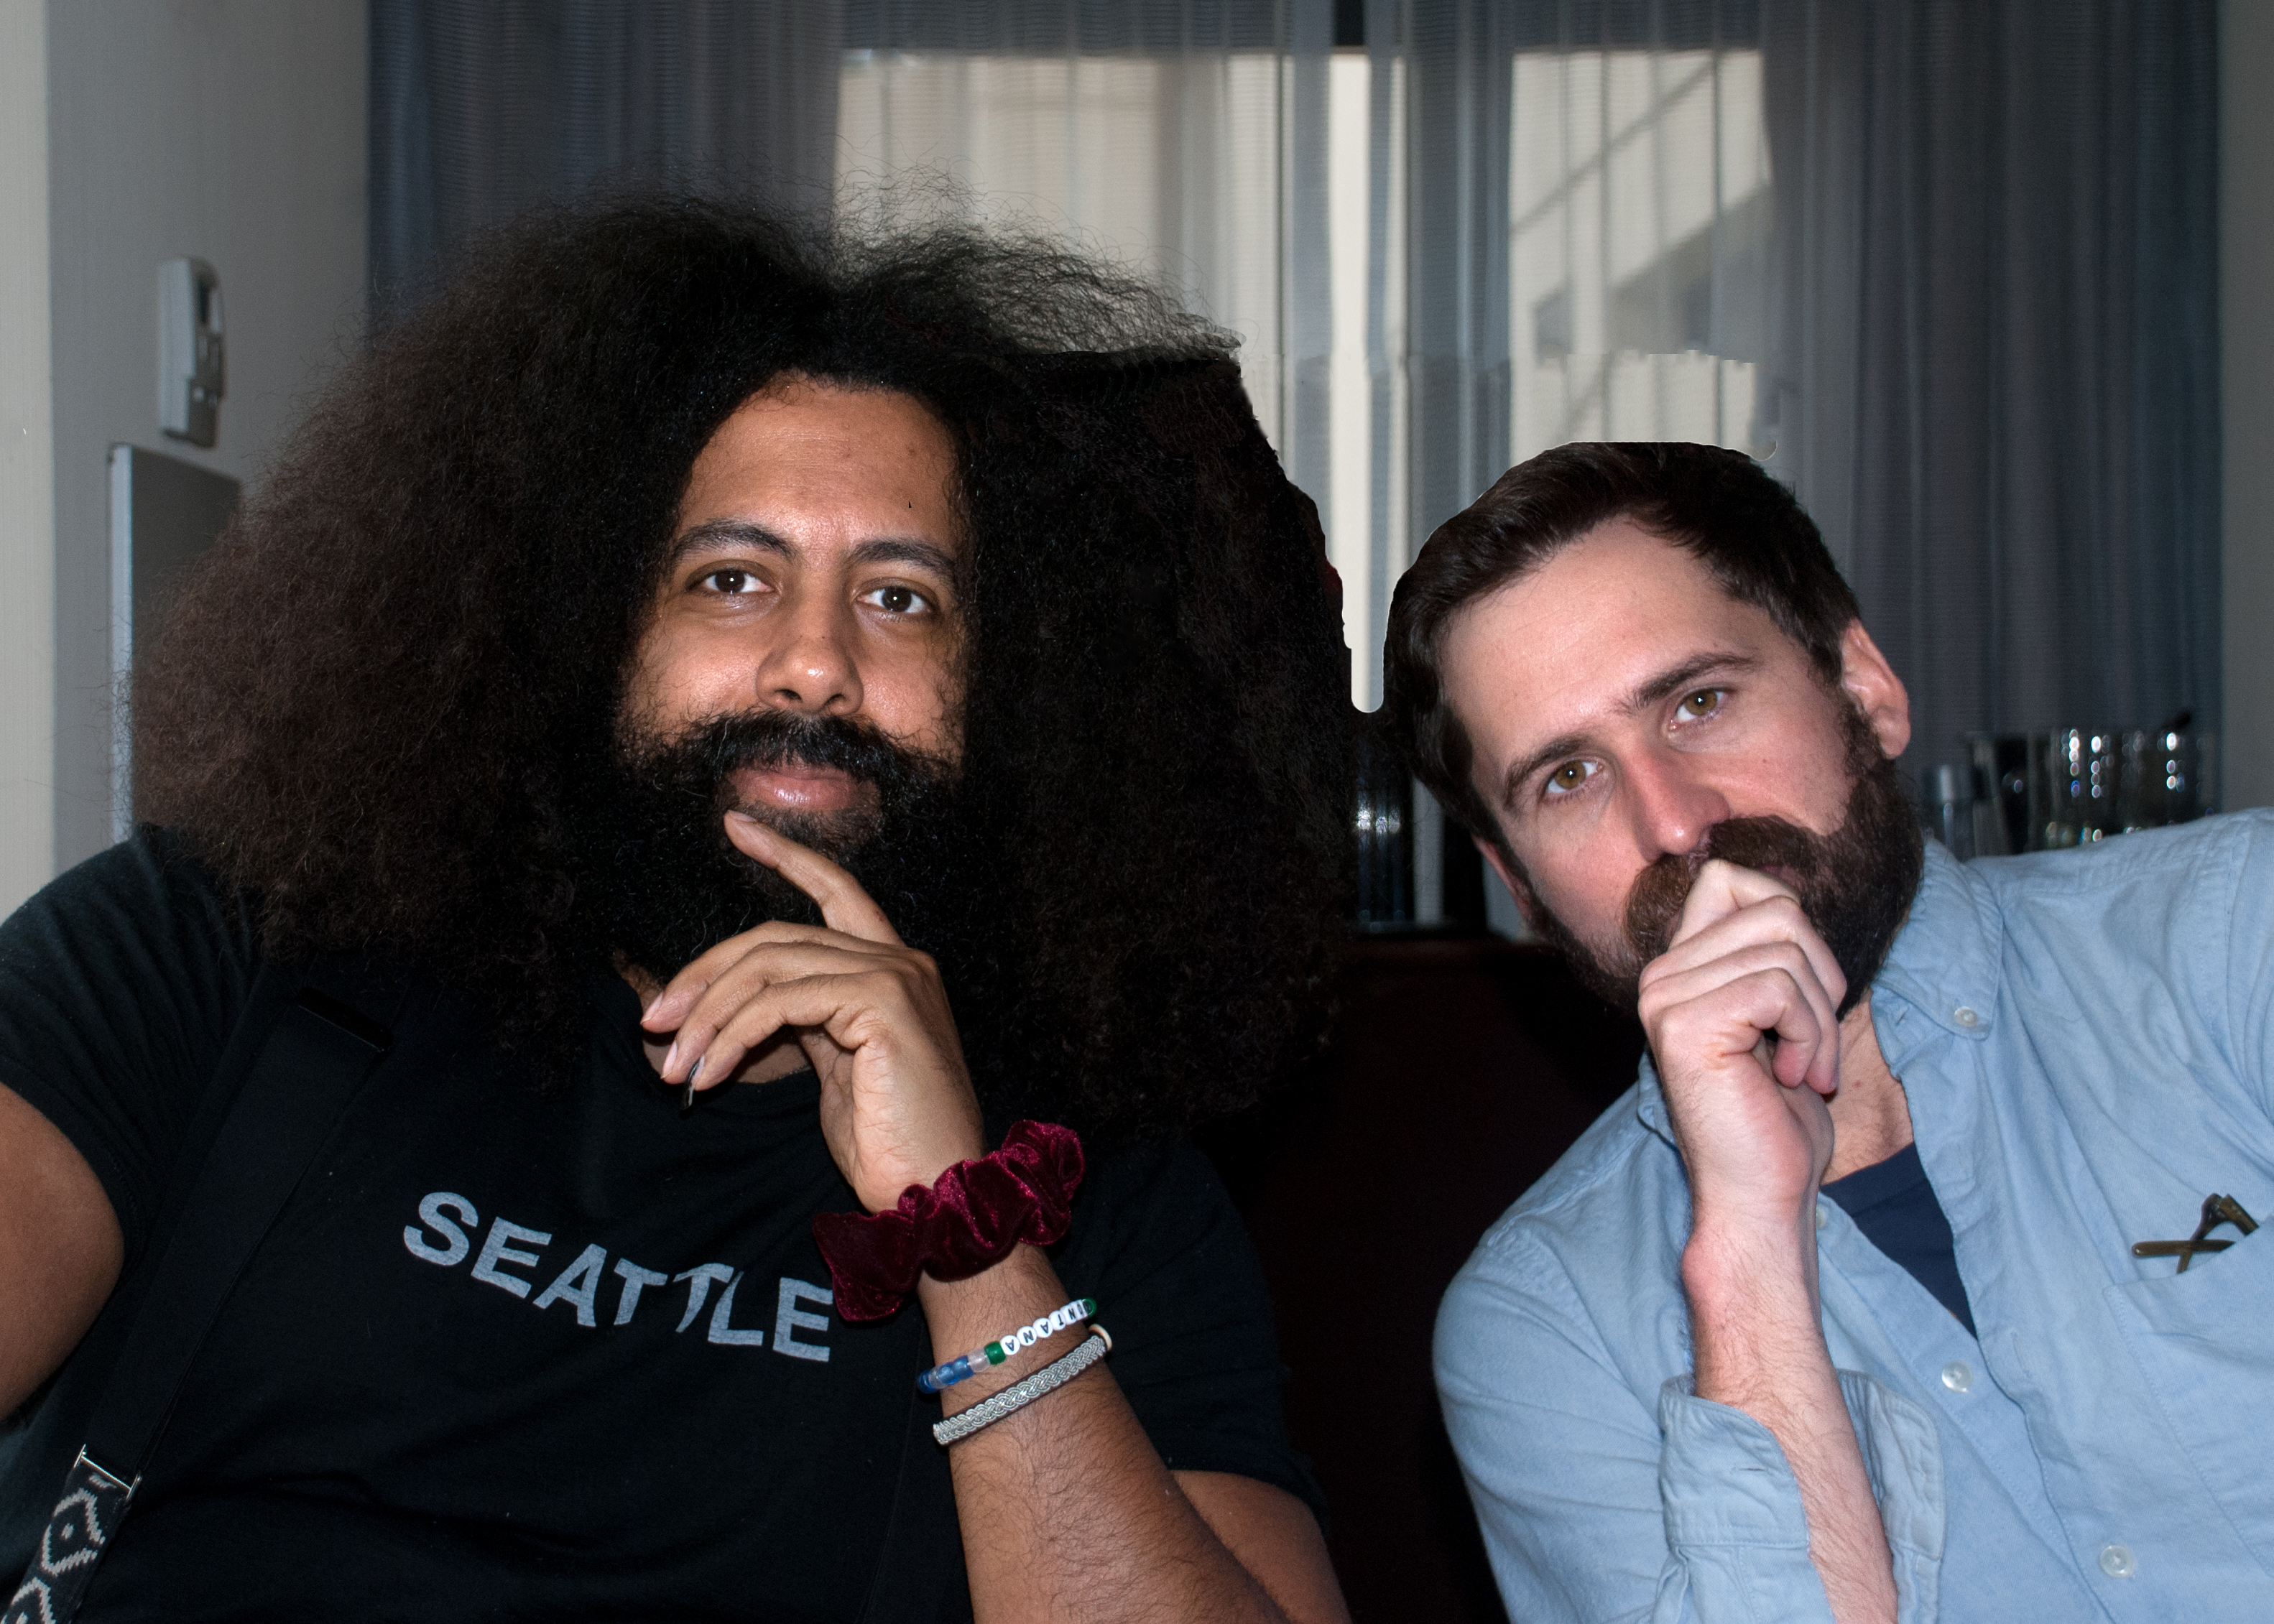 Caption: Reggie Watts & Benjamin Dickinson, San Francisco, CA 3/26/16, Credit: Andrea Chase